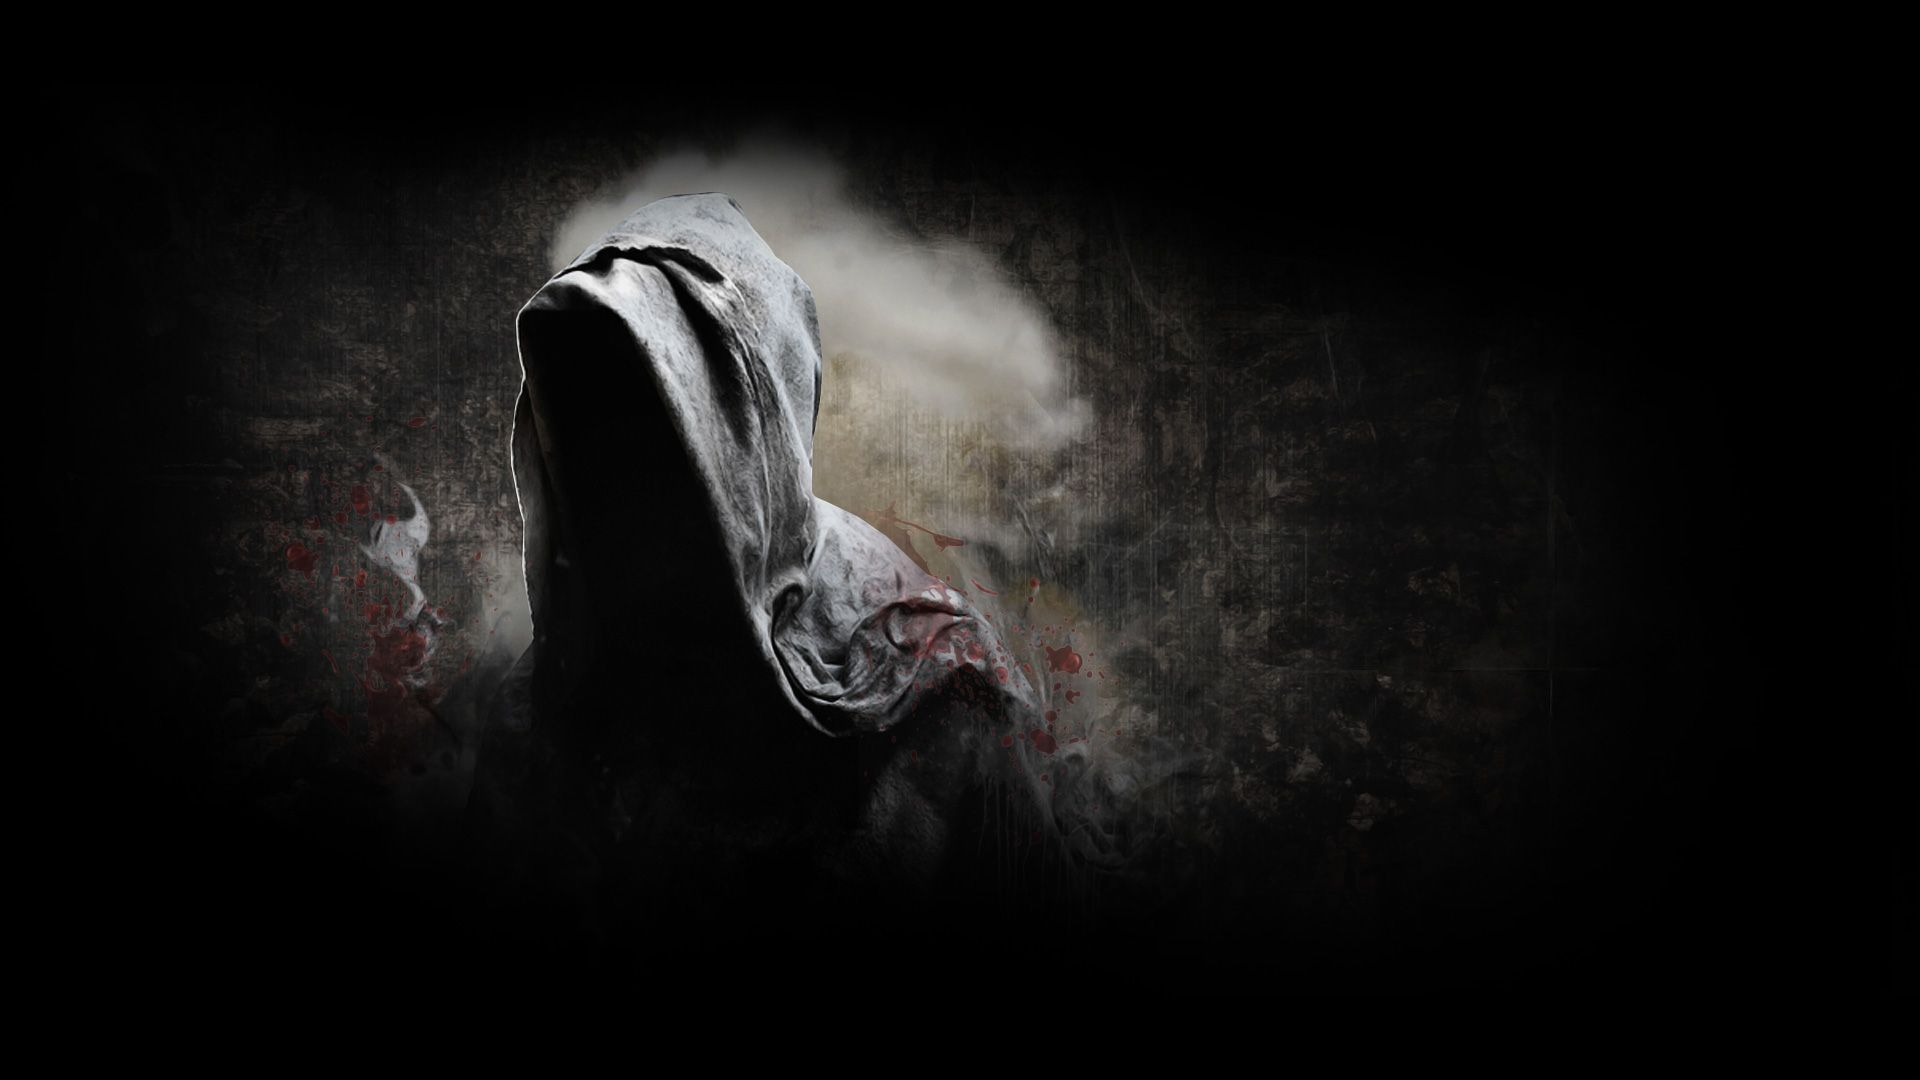 grim-reaper-fantasy-hd-wallpaper-1920x1080-1488